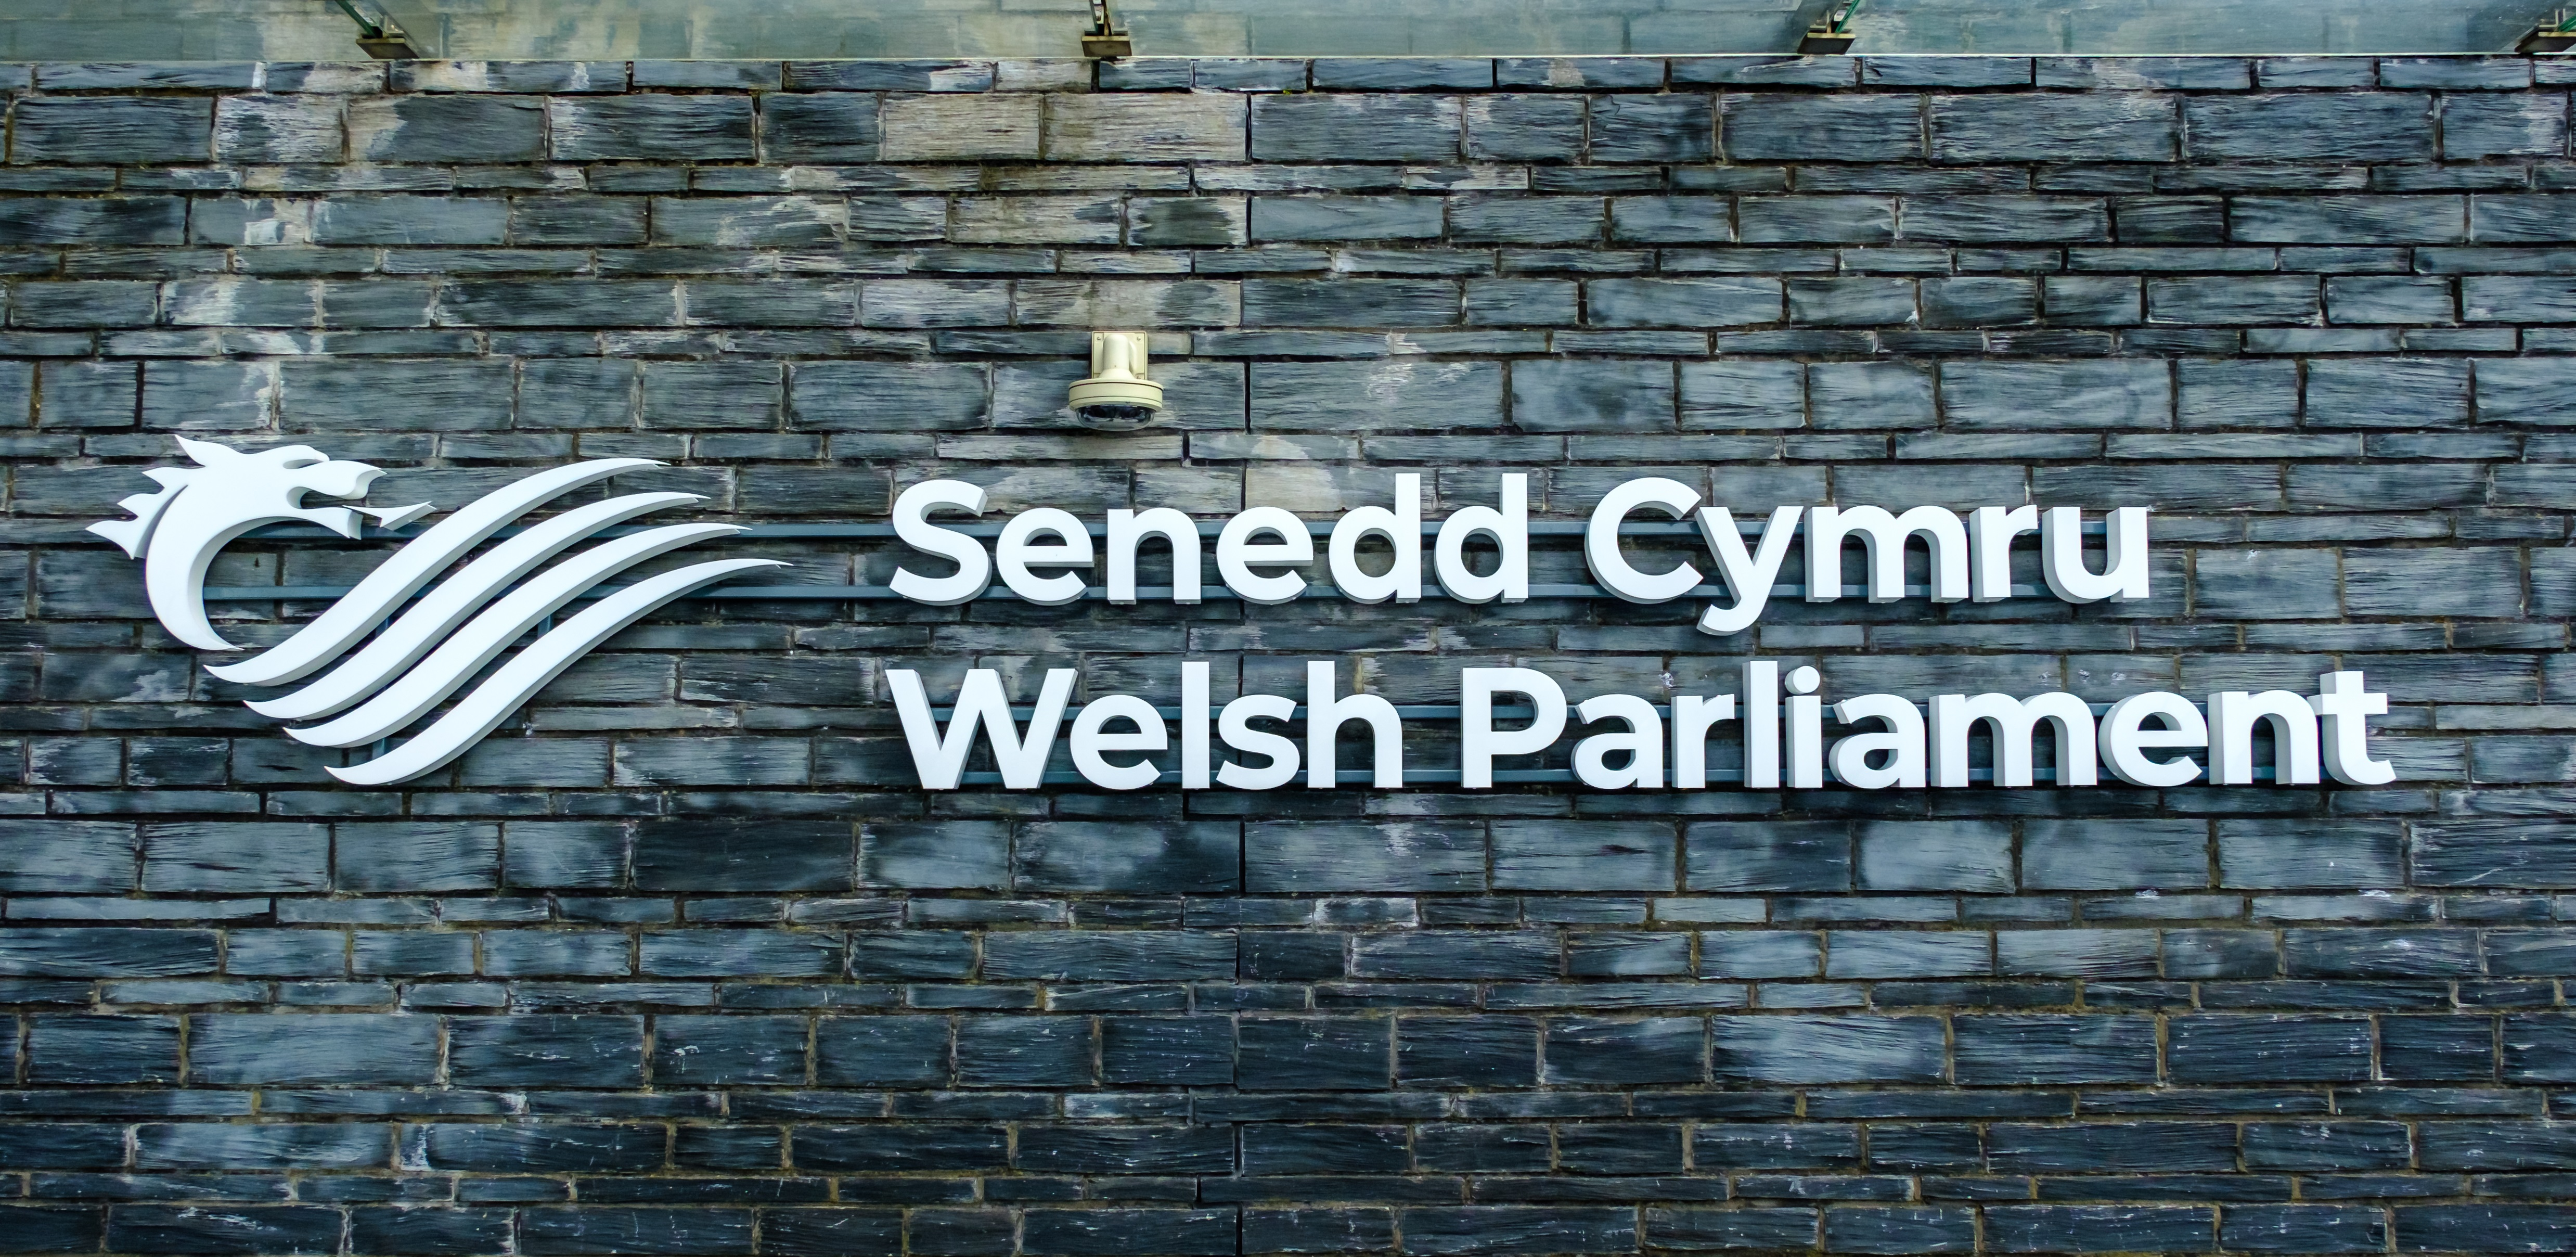 Welsh parliament sign on wall1